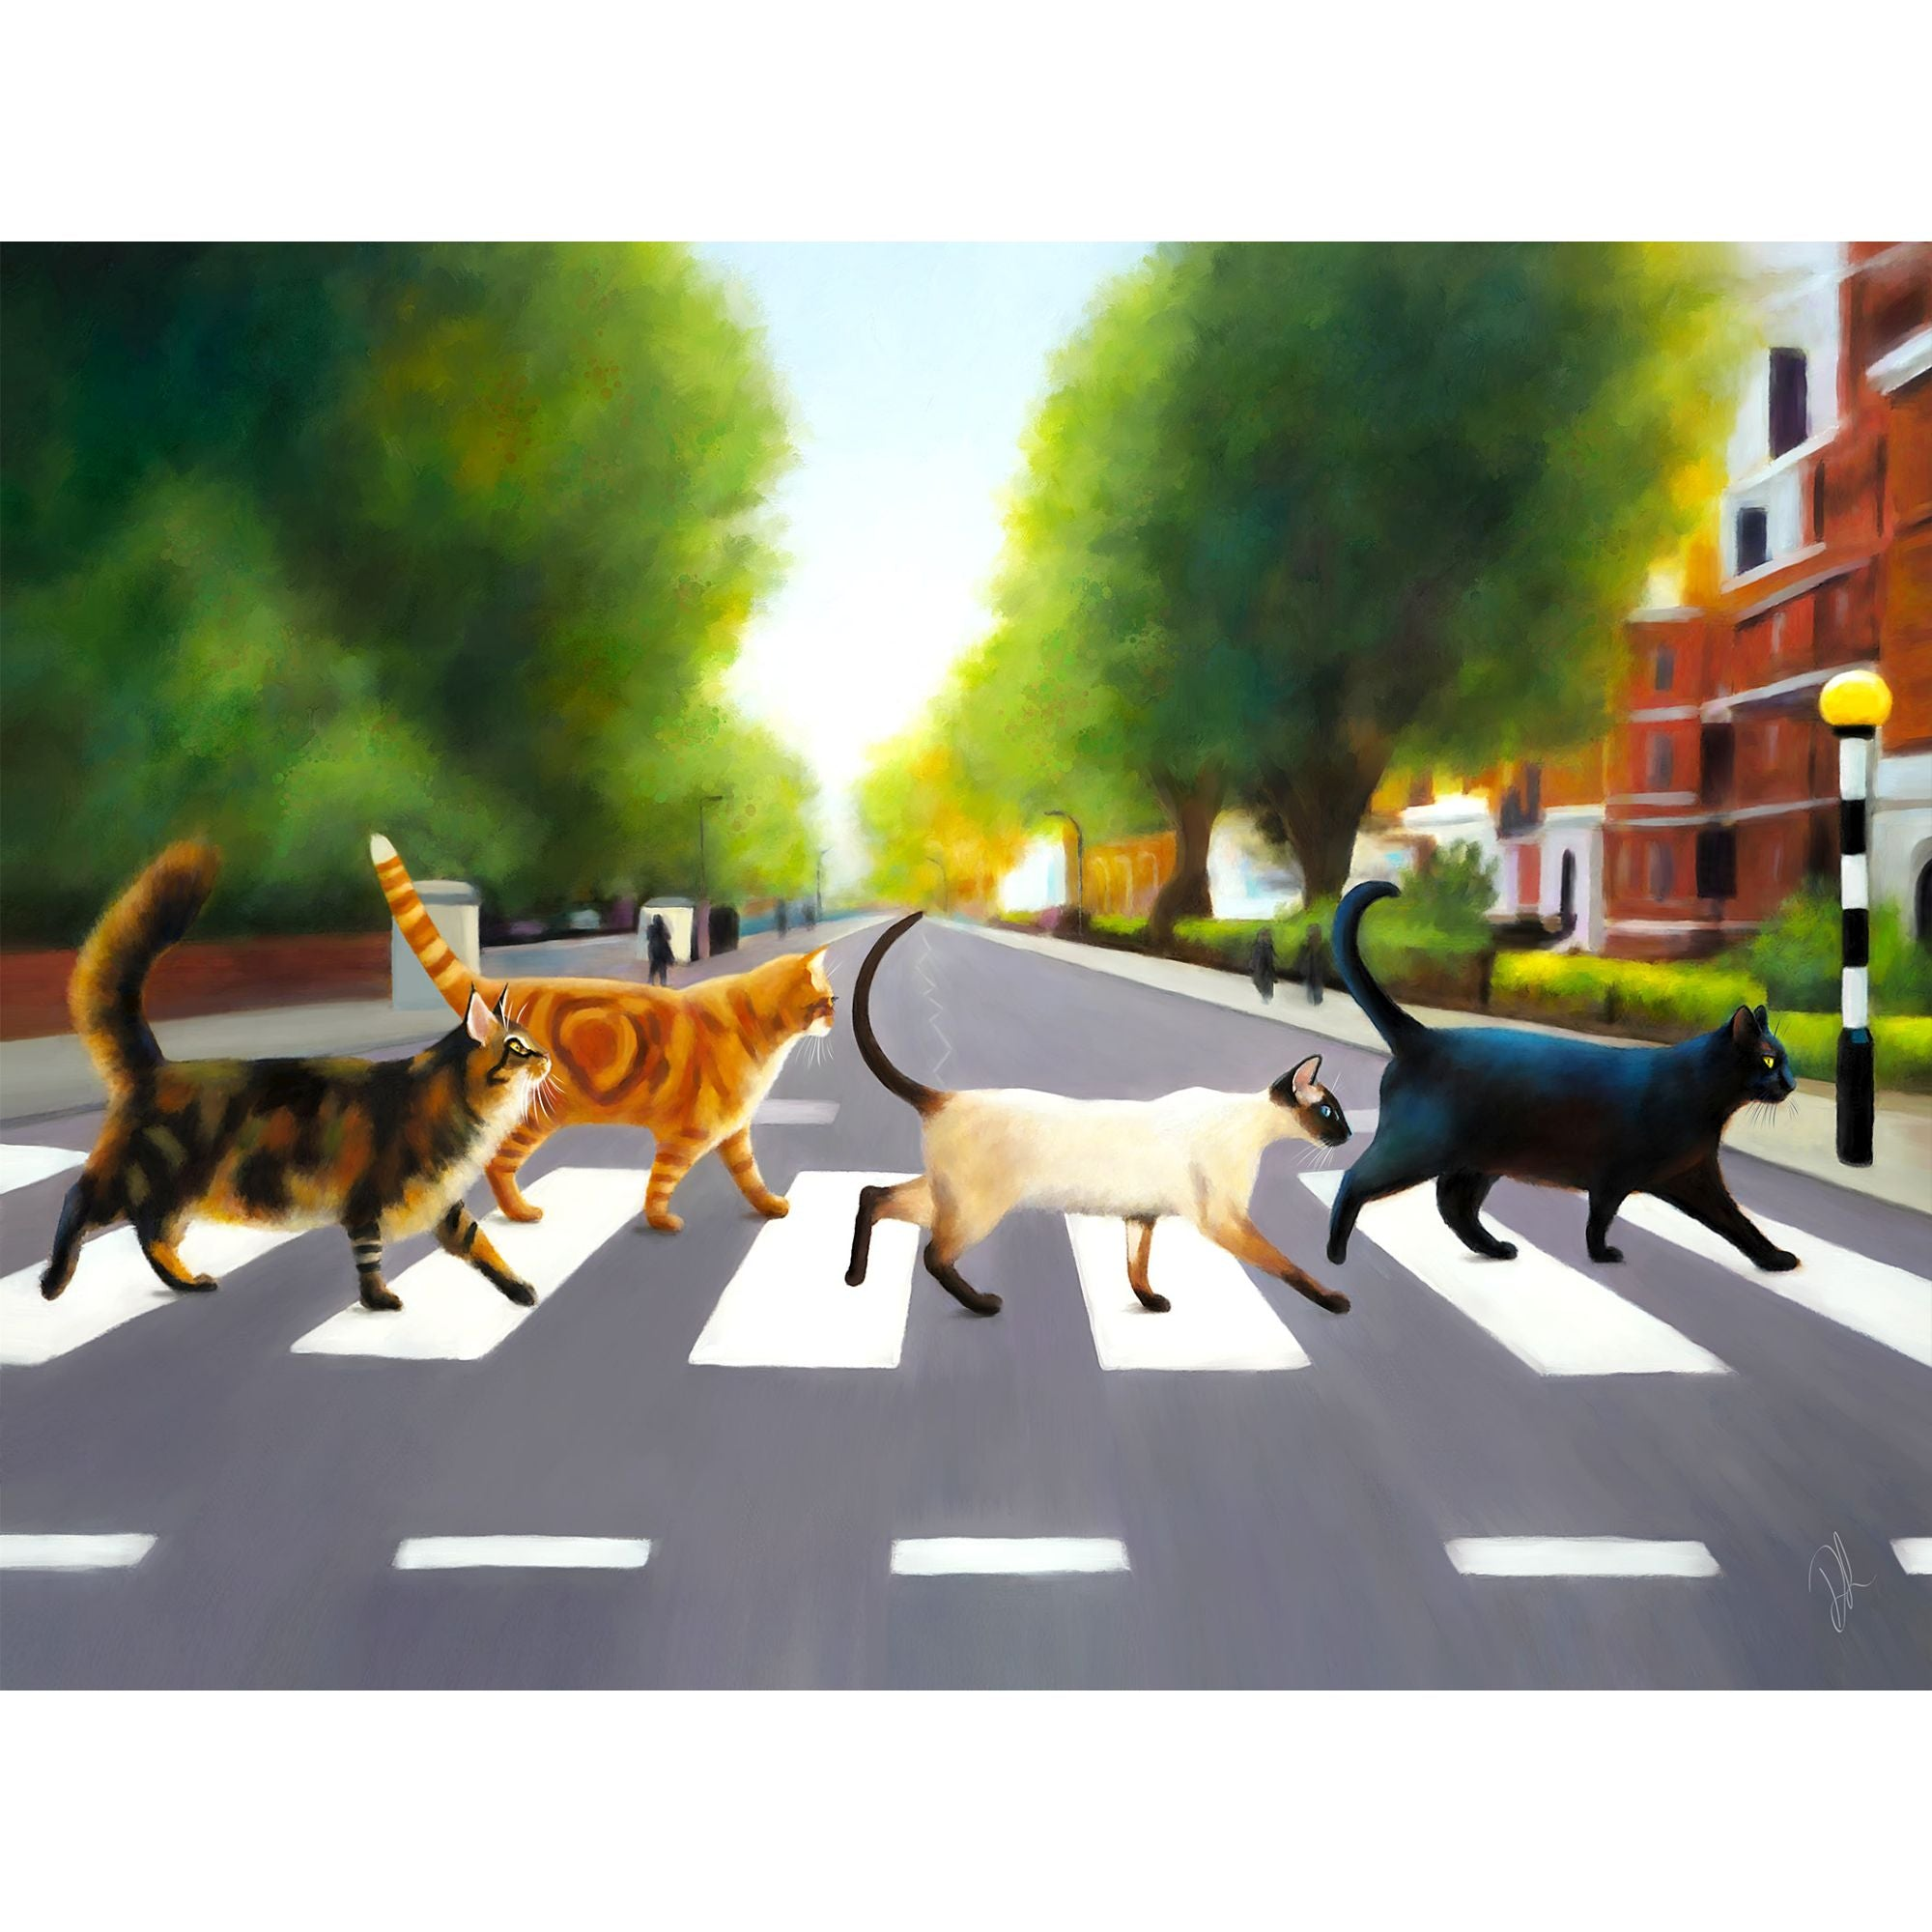 Abbey Road Cats Limited Edition Print on Canvas by Denise Laurent.  Features 4 cats on the Abbey Road crossing in London.